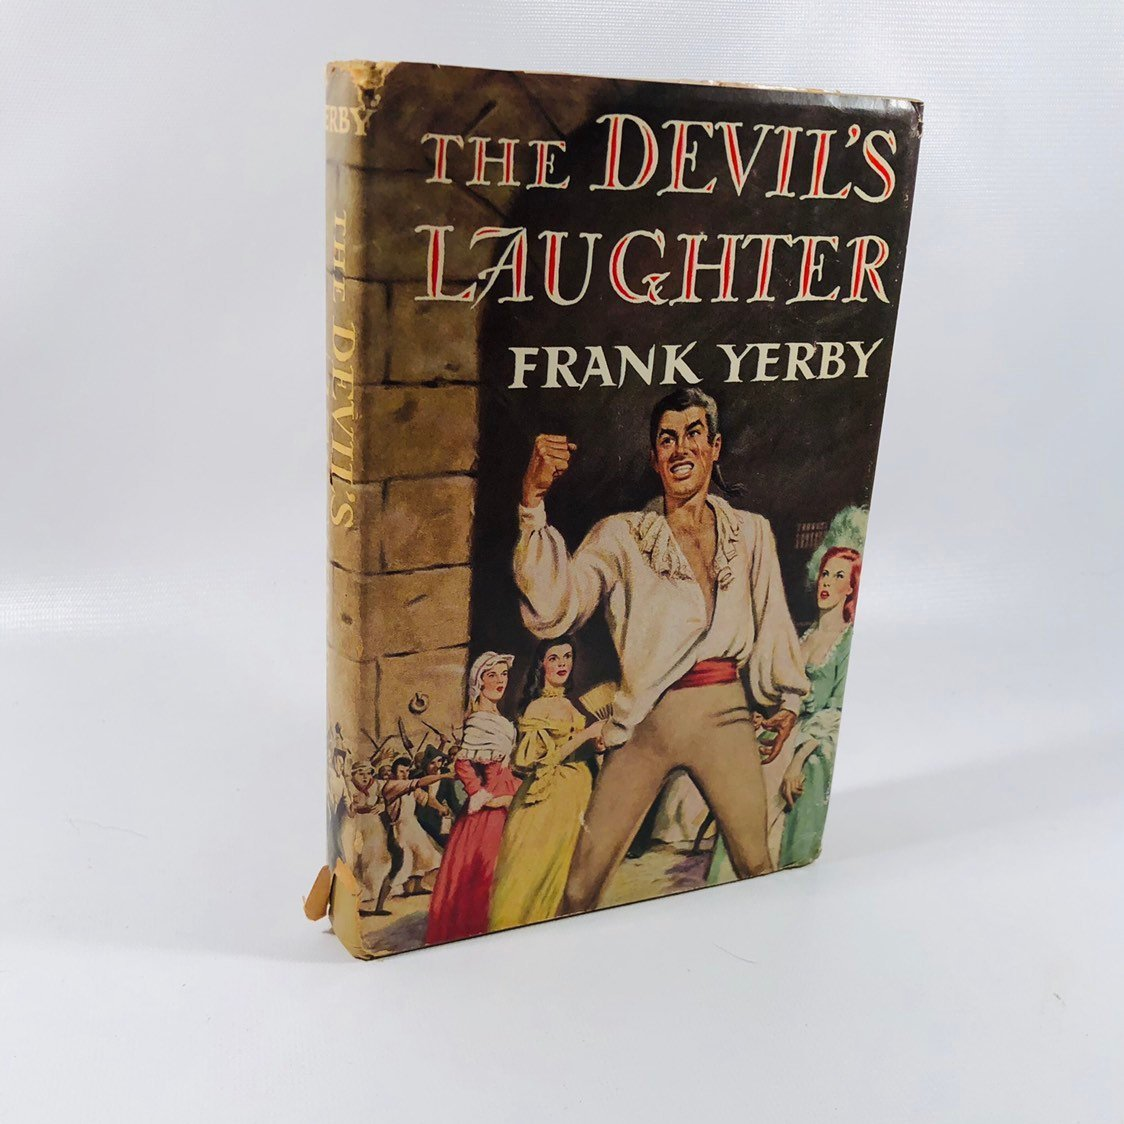 The Devil's Laughter by Frank Yerby 1953 A Romance Set during the French Revolution